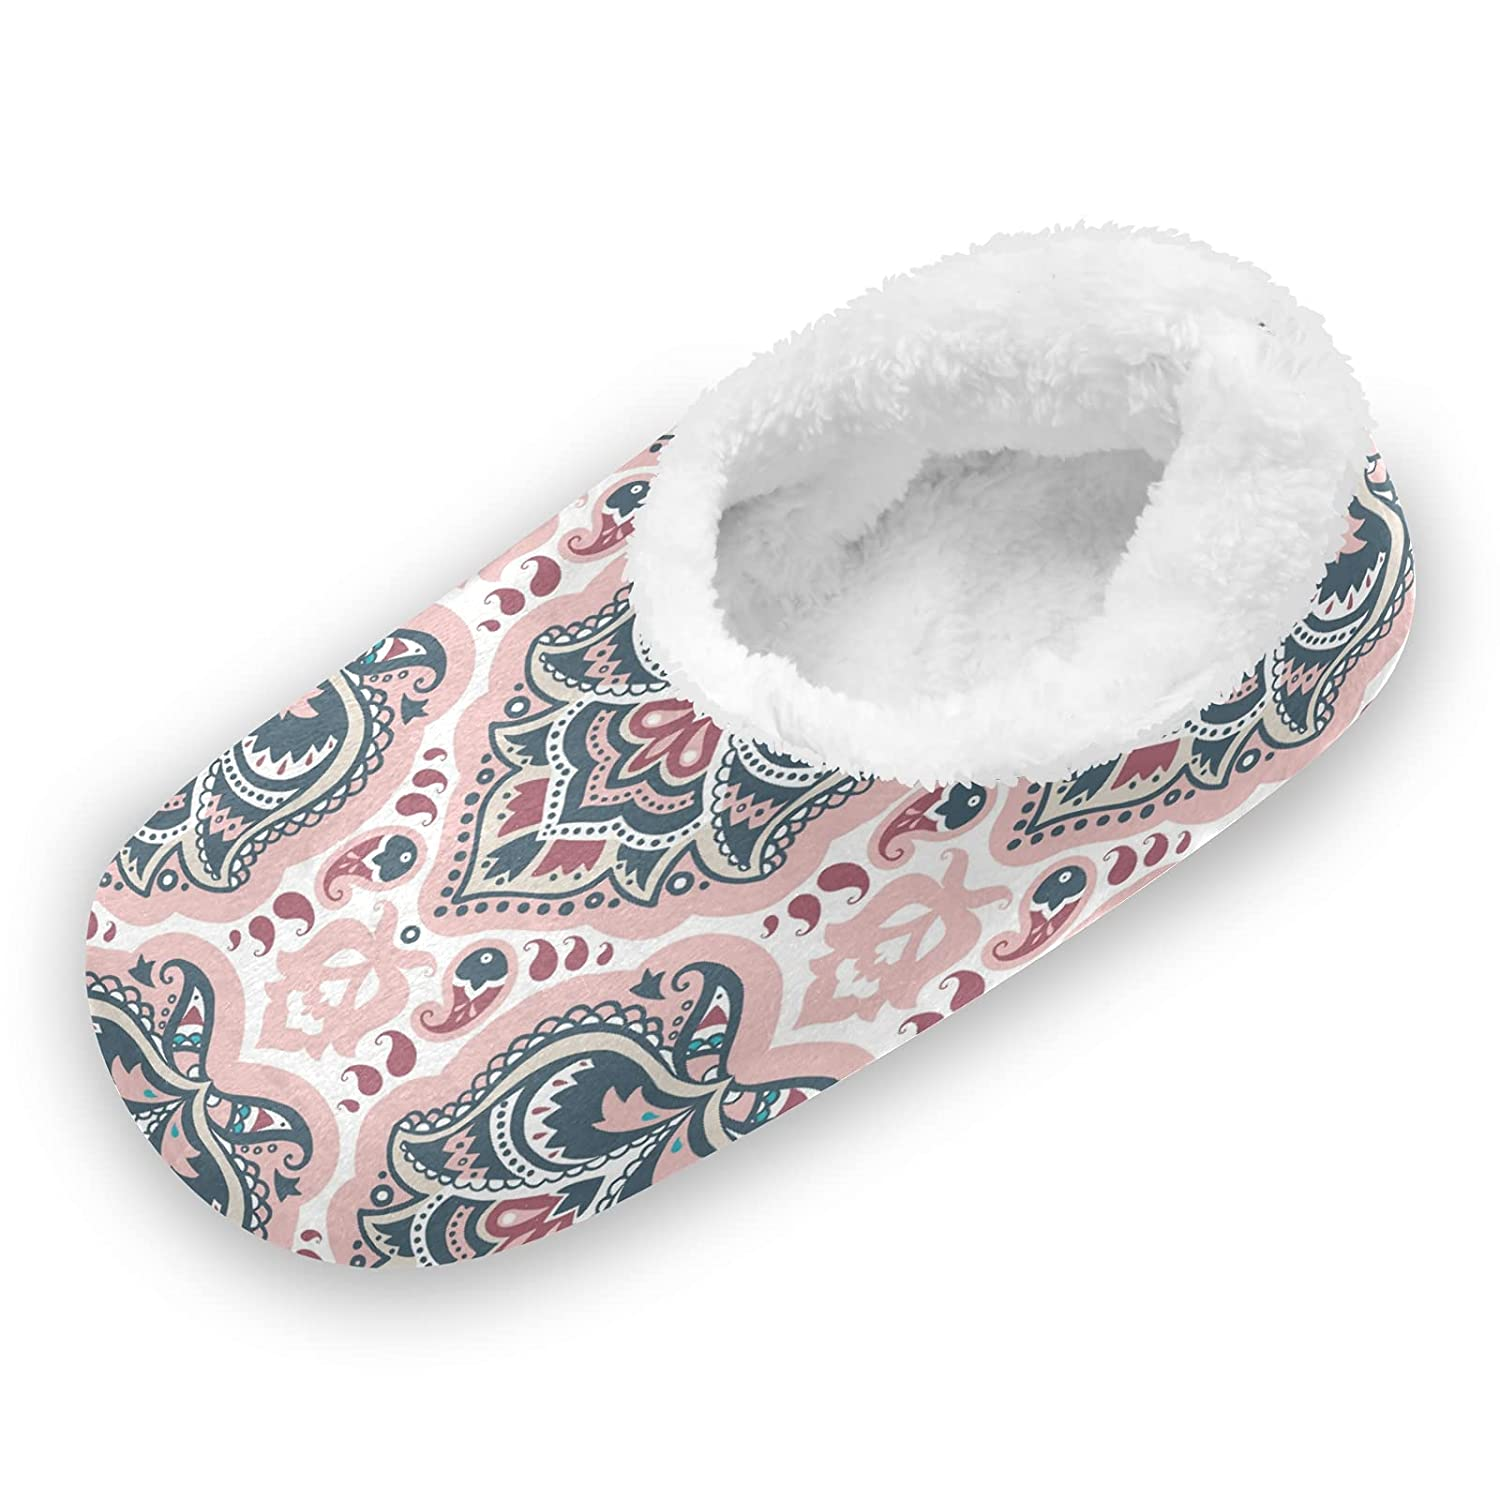 Bombing free shipping Ethnic Indian Mandala Floral Fuzzy Slippers Women Feet Popular product Cute for